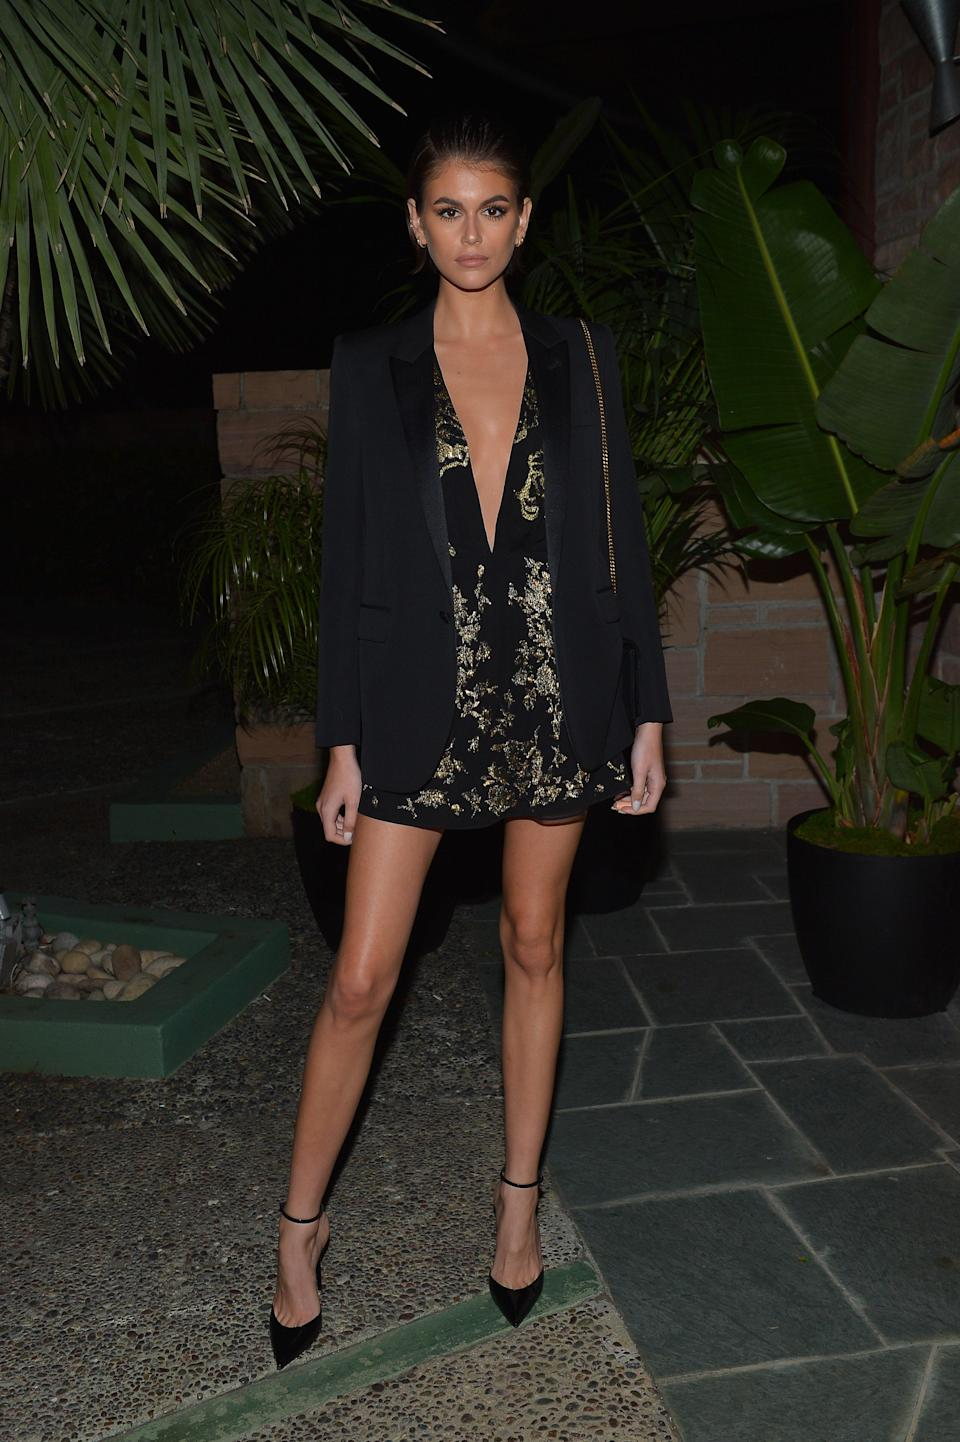 Kaia Gerber attended the Saint Laurent Golden Globes party in a peak YSL 'fit.